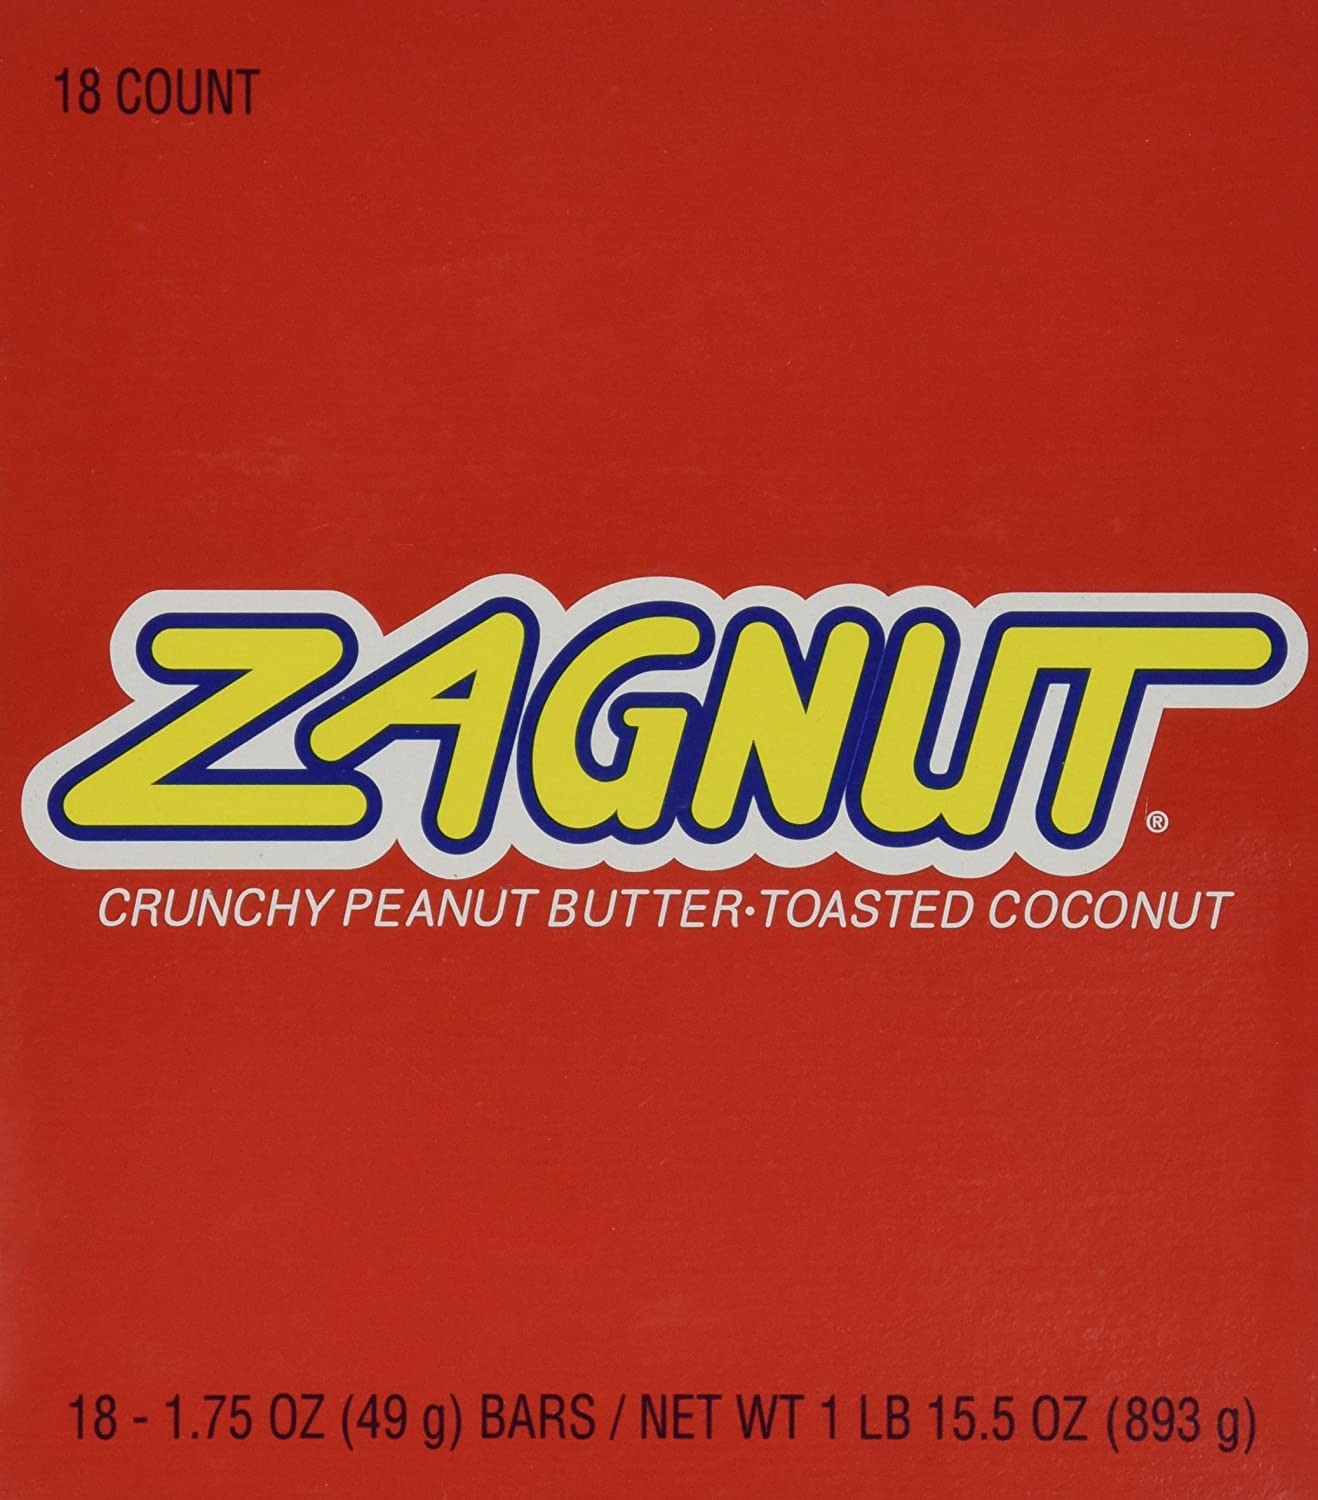 Amazon.com : Zagnut Bar, 1.75 oz, 18 count : Candy And Chocolate Single  Serve Bars : Grocery & Gourmet Food